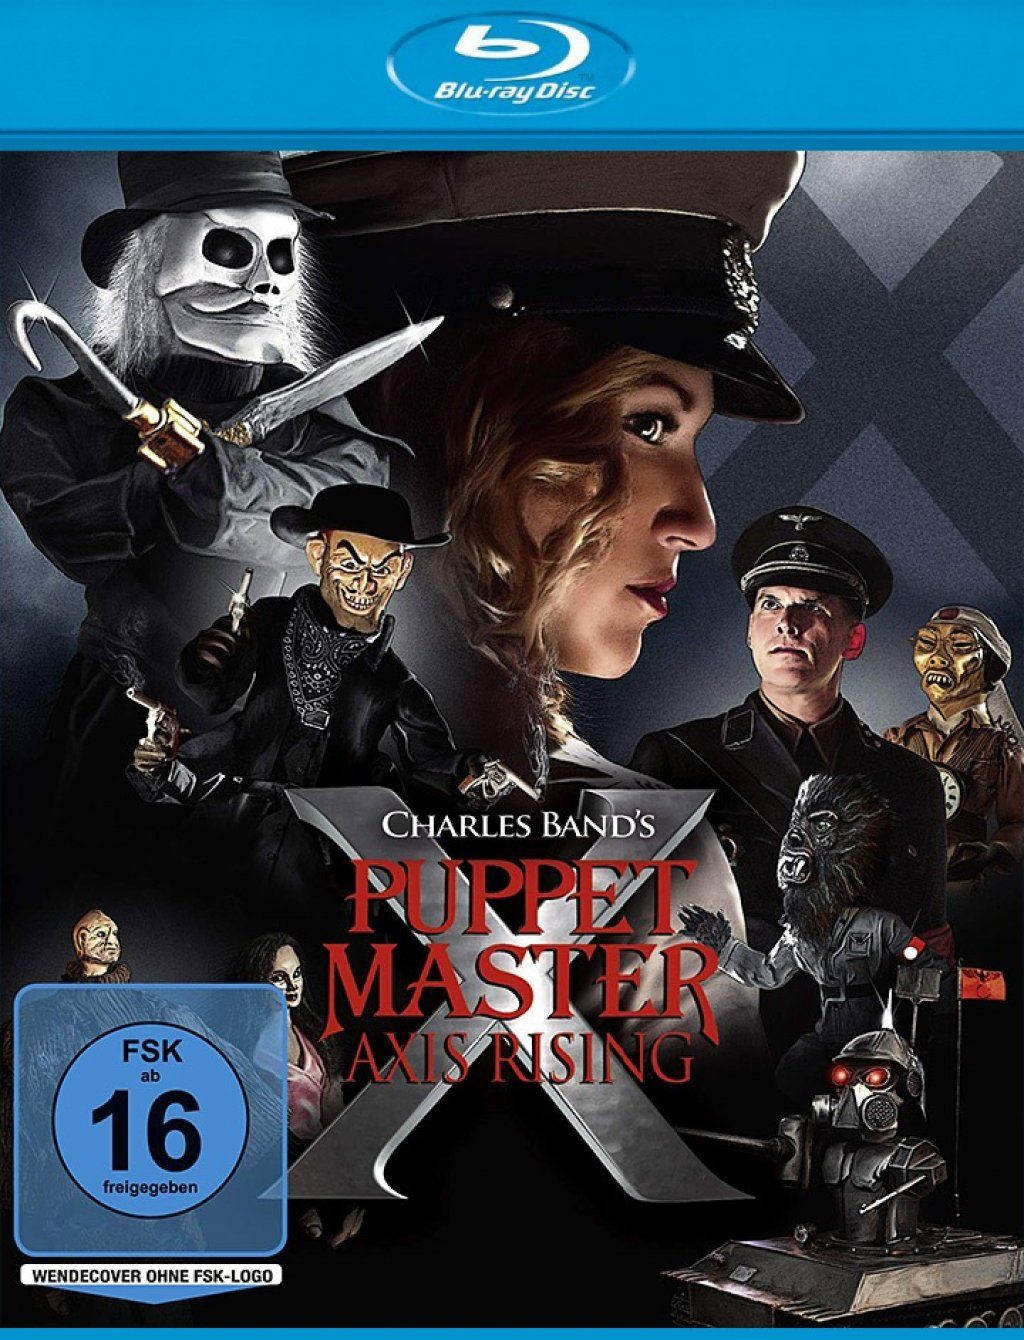 Puppet Master X - Axis Rising (BLURAY)